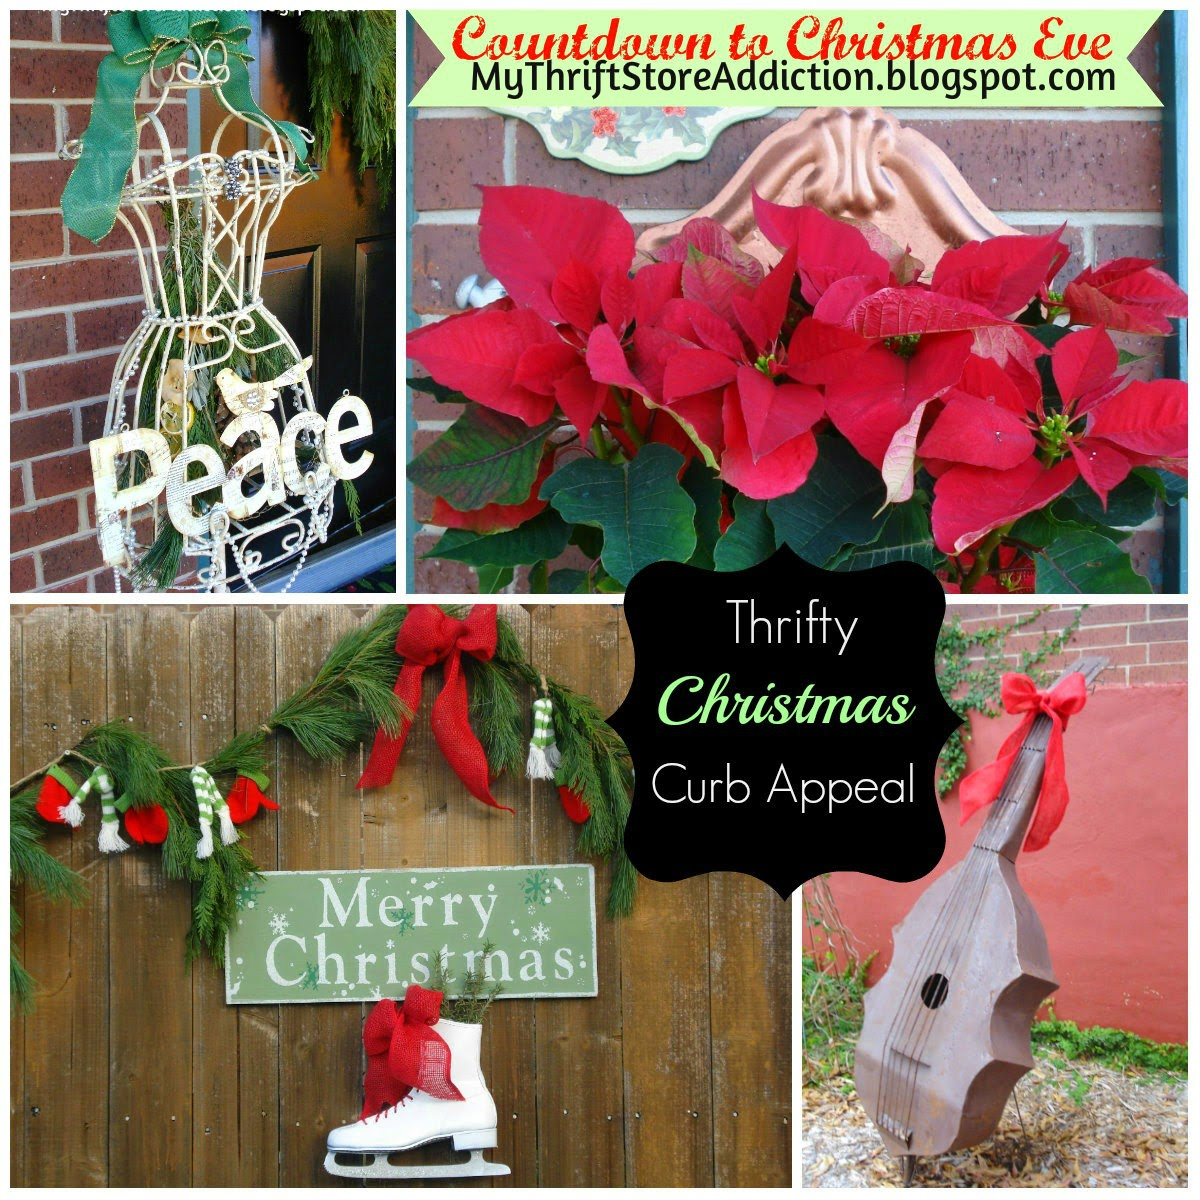 Thrifty festive curb appeal